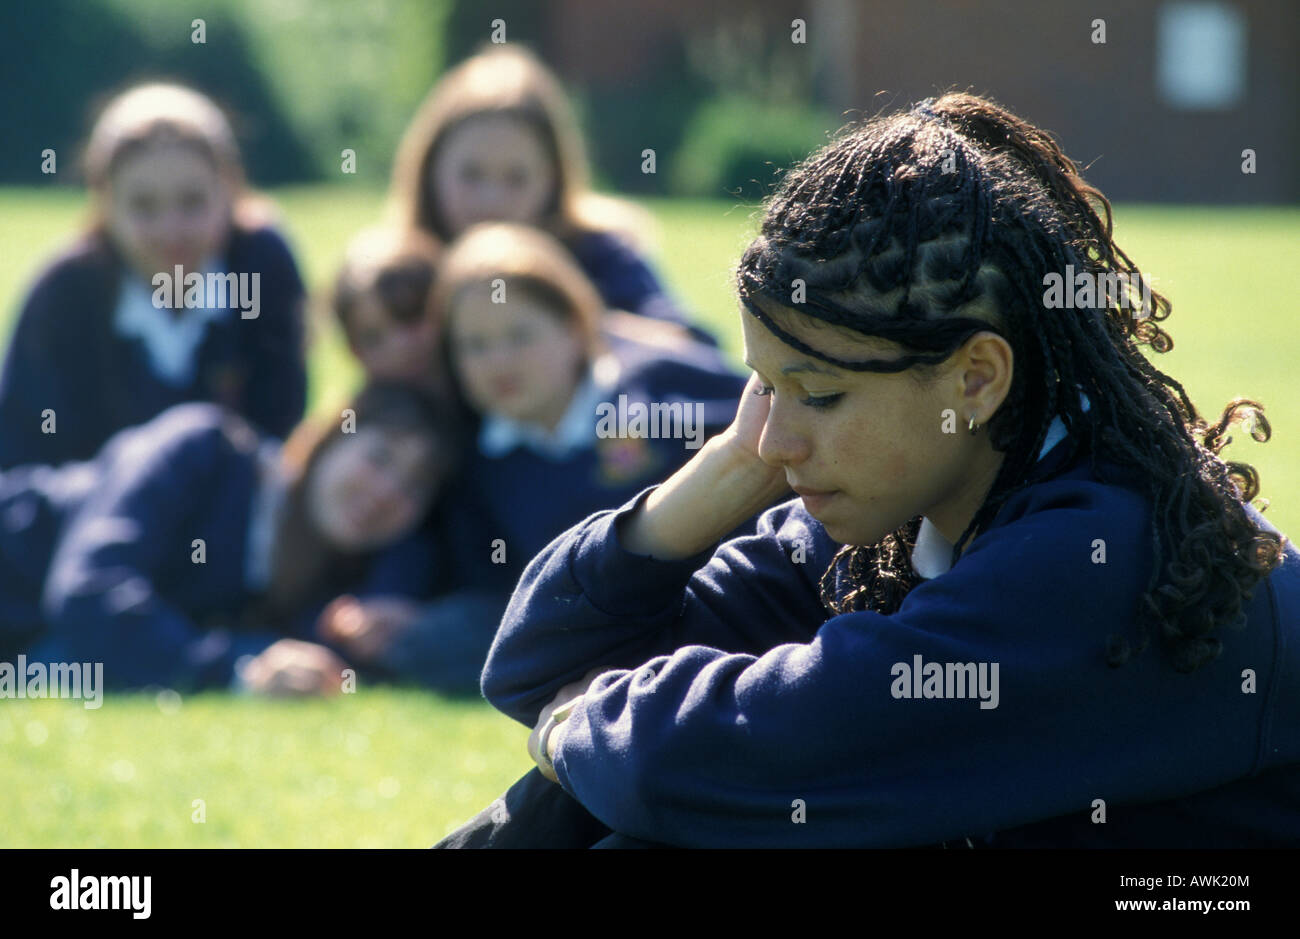 high school girl of mixed race origin in uniform being tormented by group of peers in school playground - Stock Image